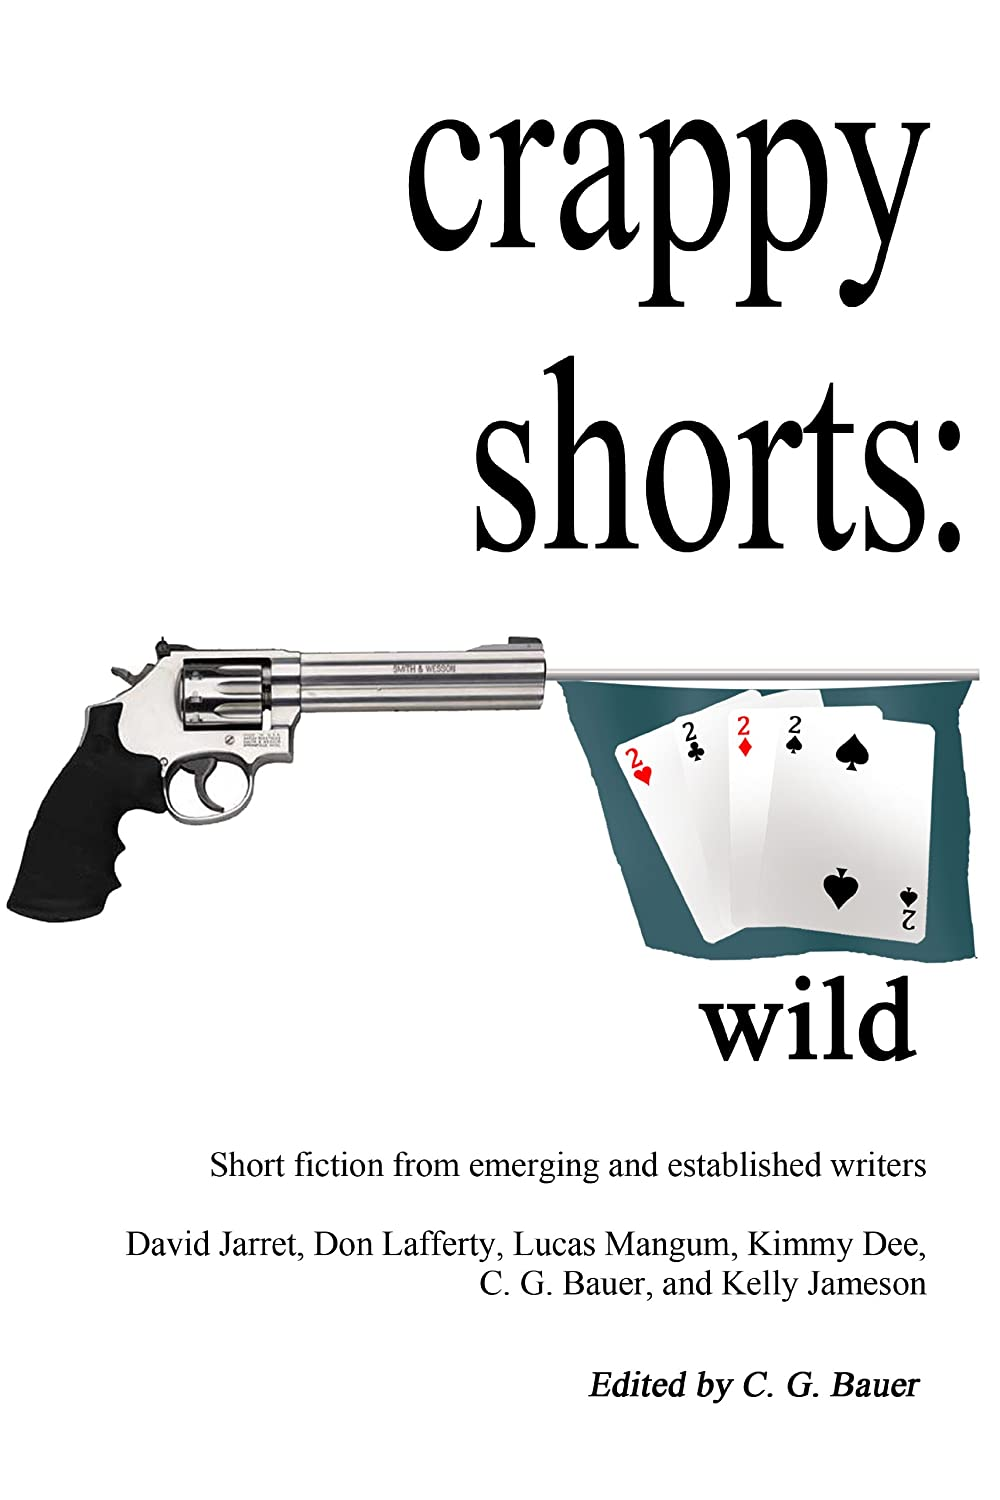 crappy shorts-deuces wild